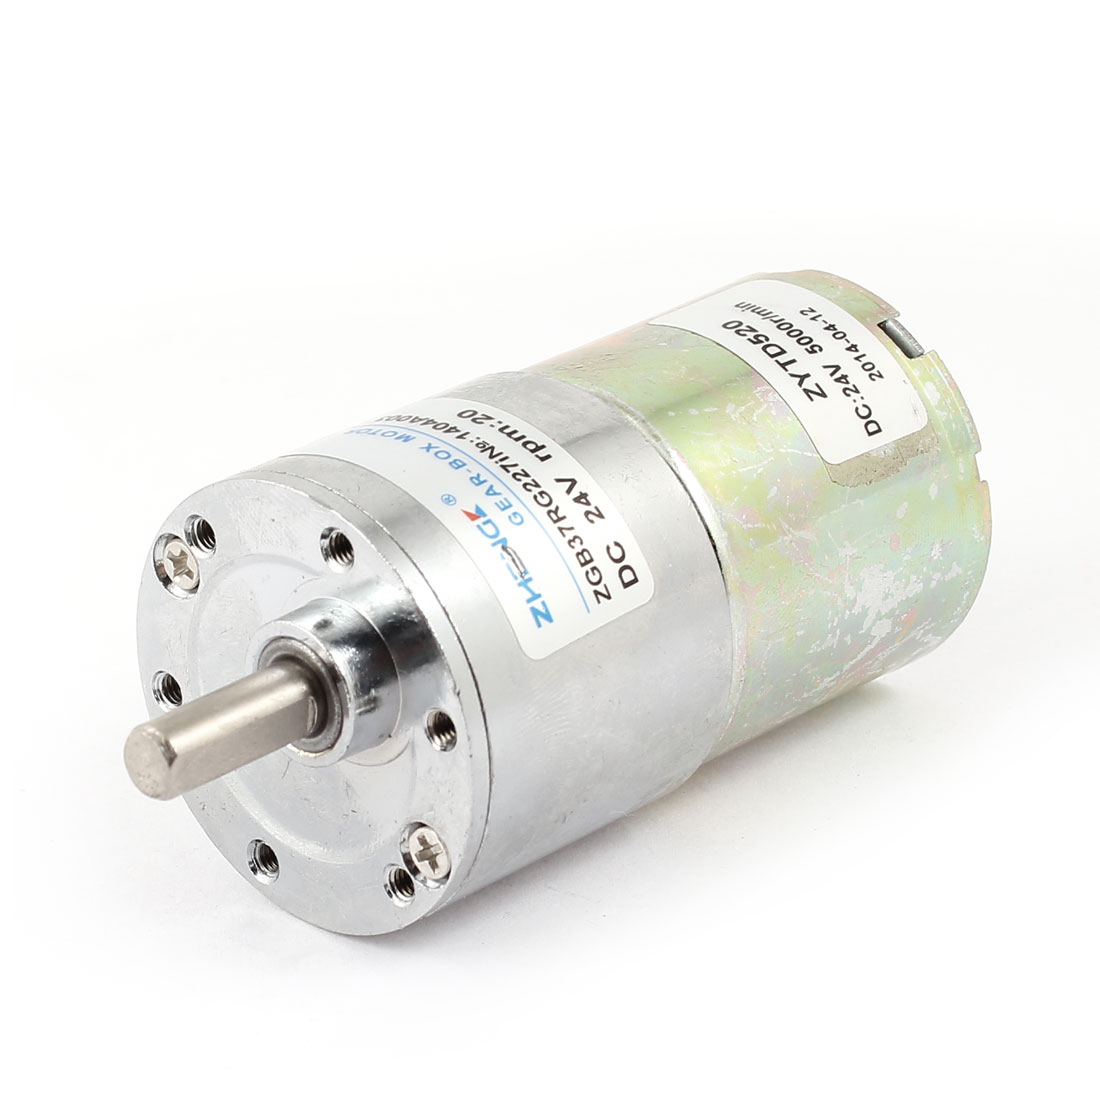 DC 24V 20 RPM 6mm Dia Shaft Magnetic Gearbox Electric Geared Motor